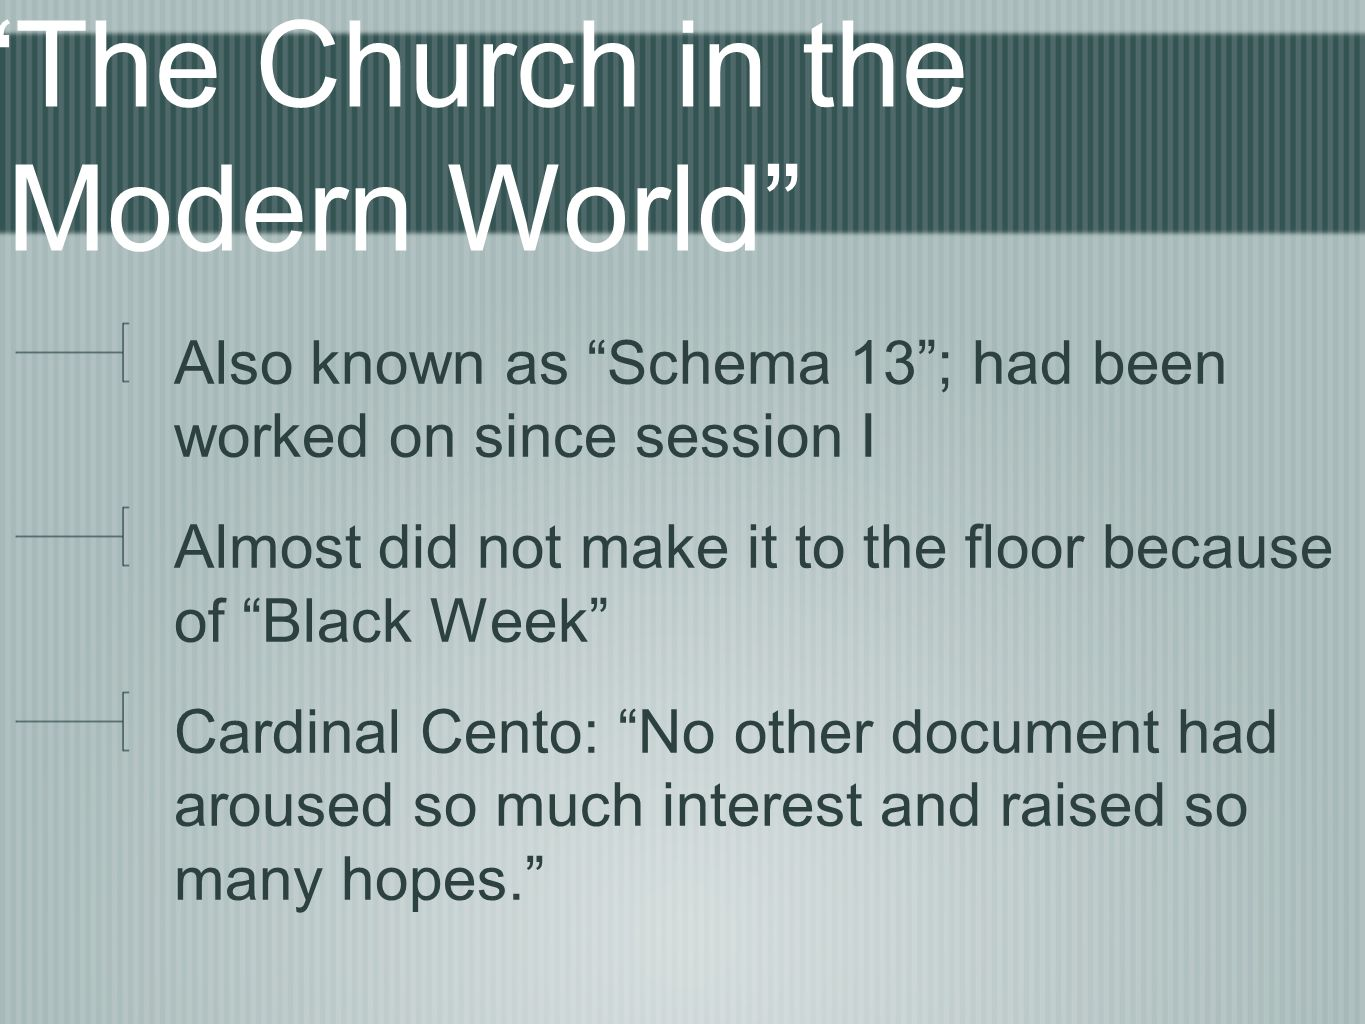 The Church in the Modern World Also known as Schema 13; had been worked on since session I Almost did not make it to the floor because of Black Week Cardinal Cento: No other document had aroused so much interest and raised so many hopes.